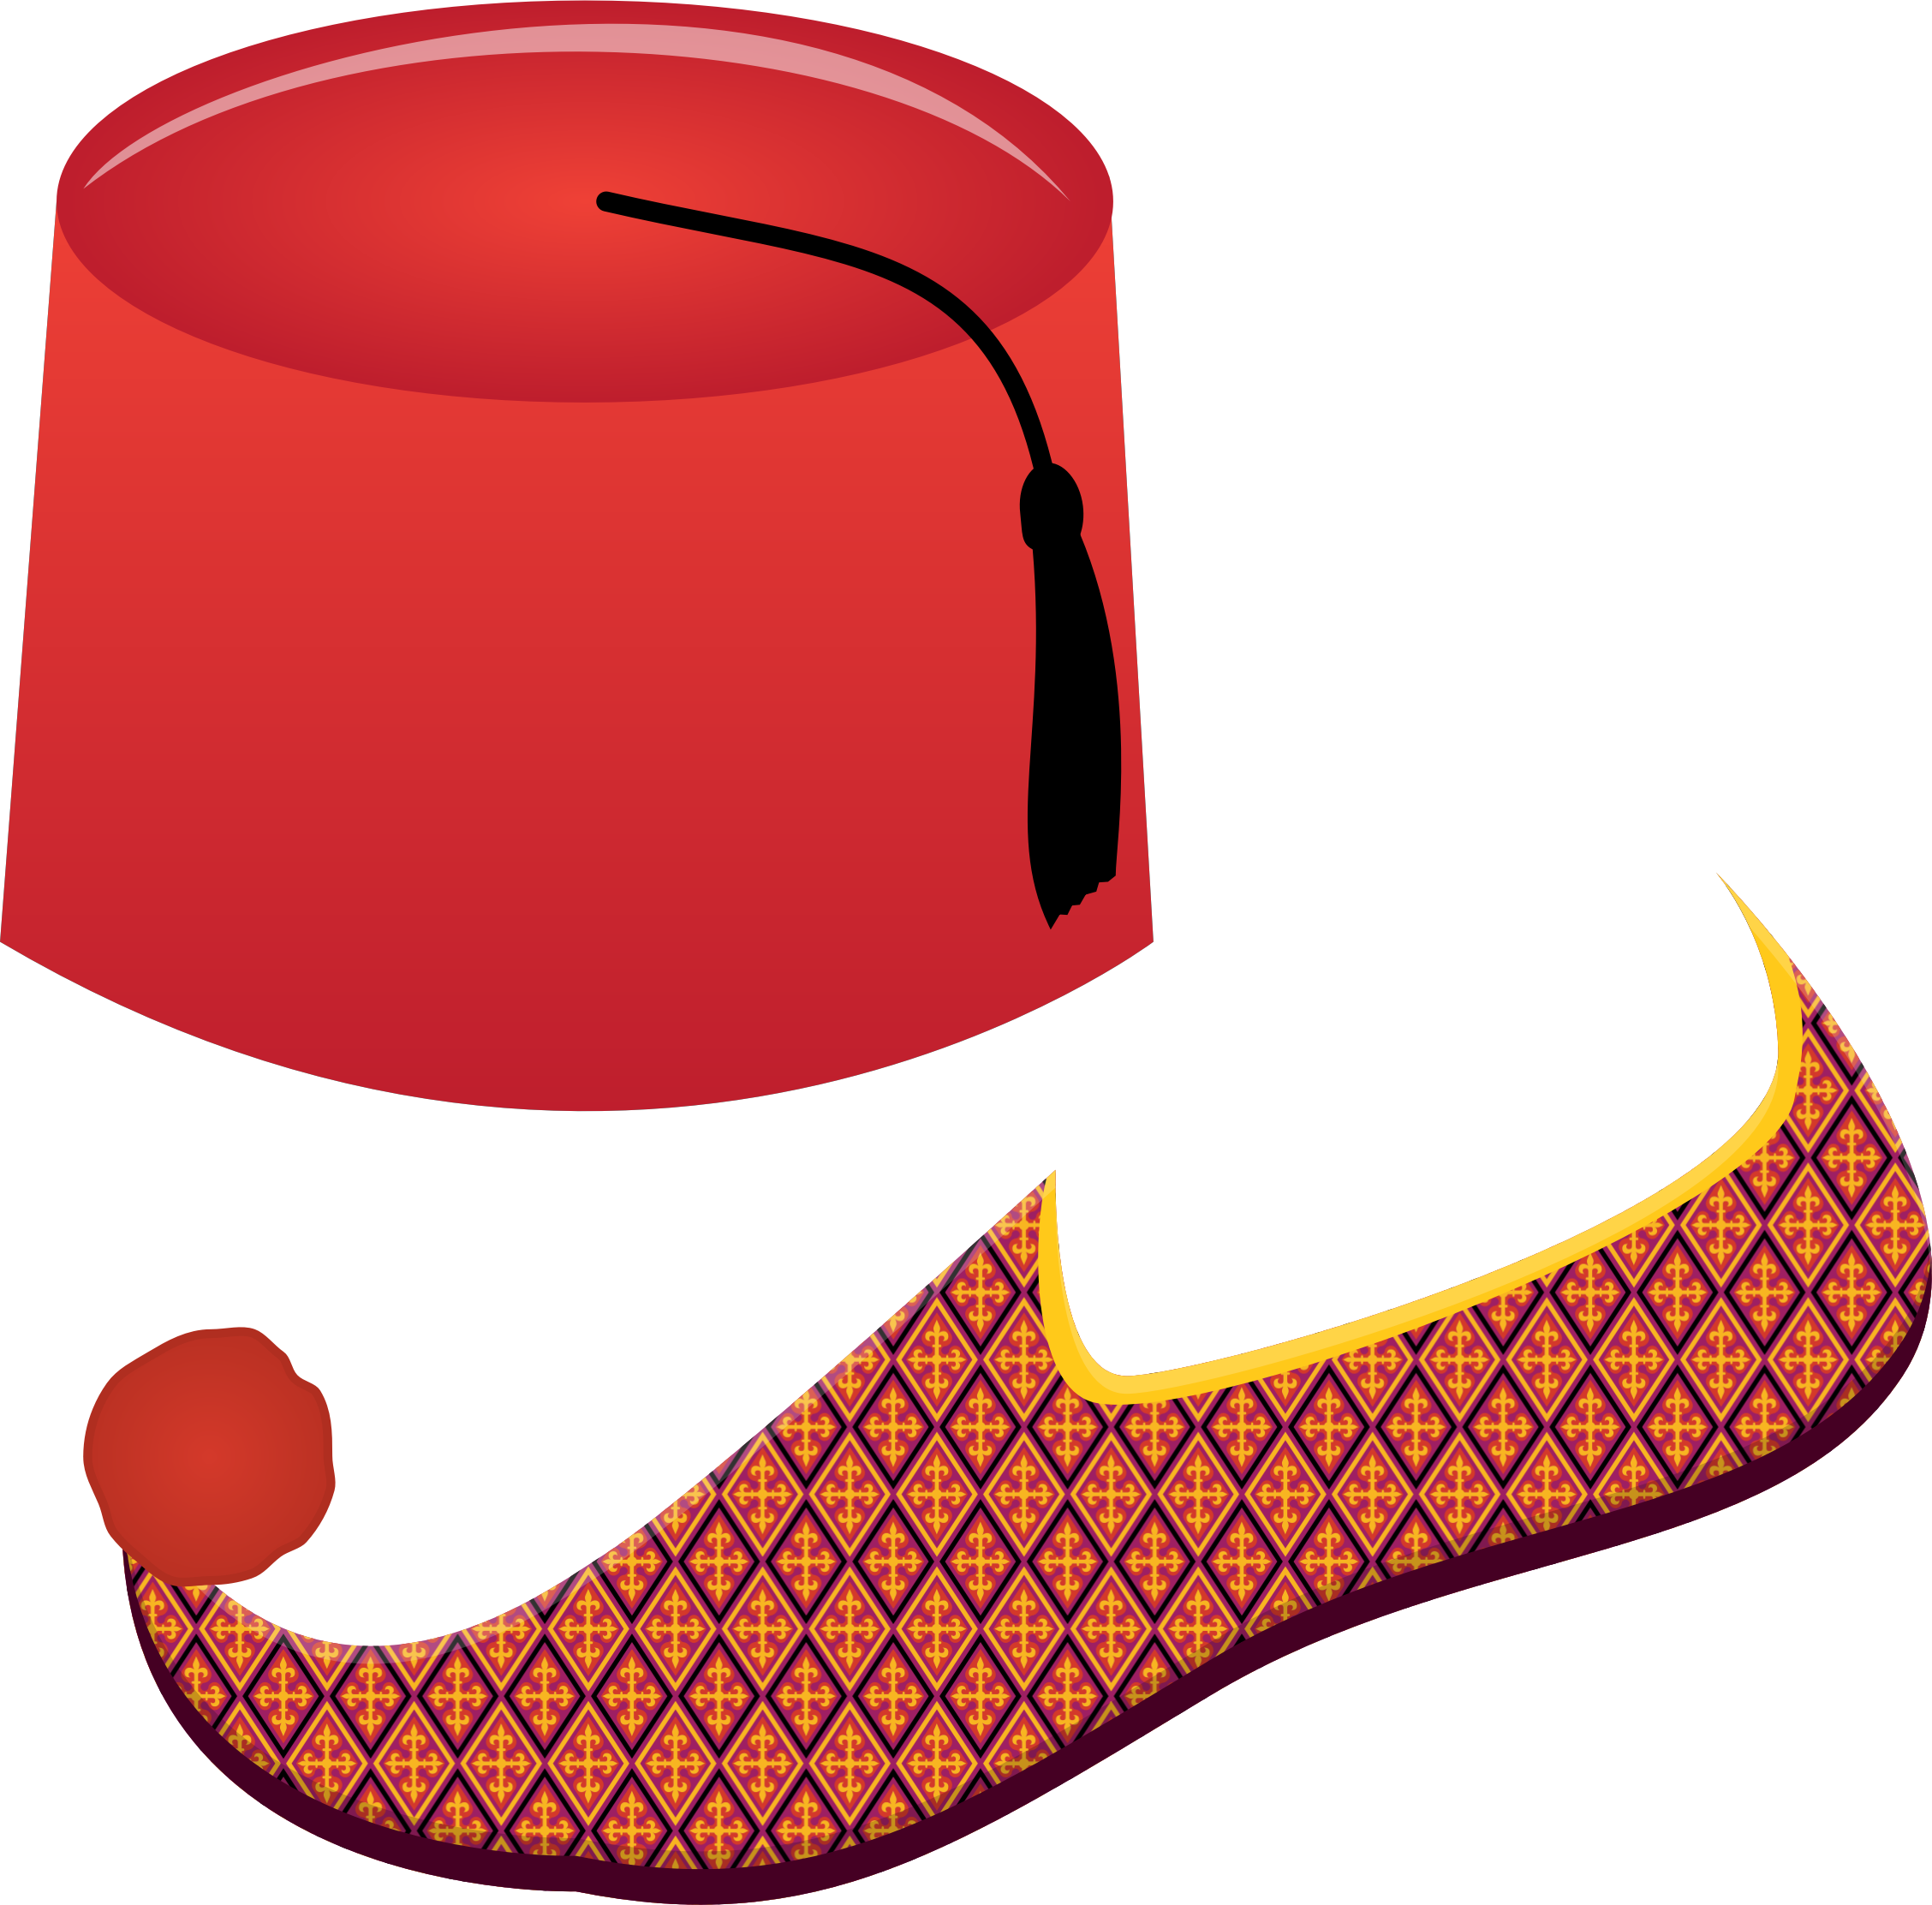 Fez and Turkish Shoe by intergrapher